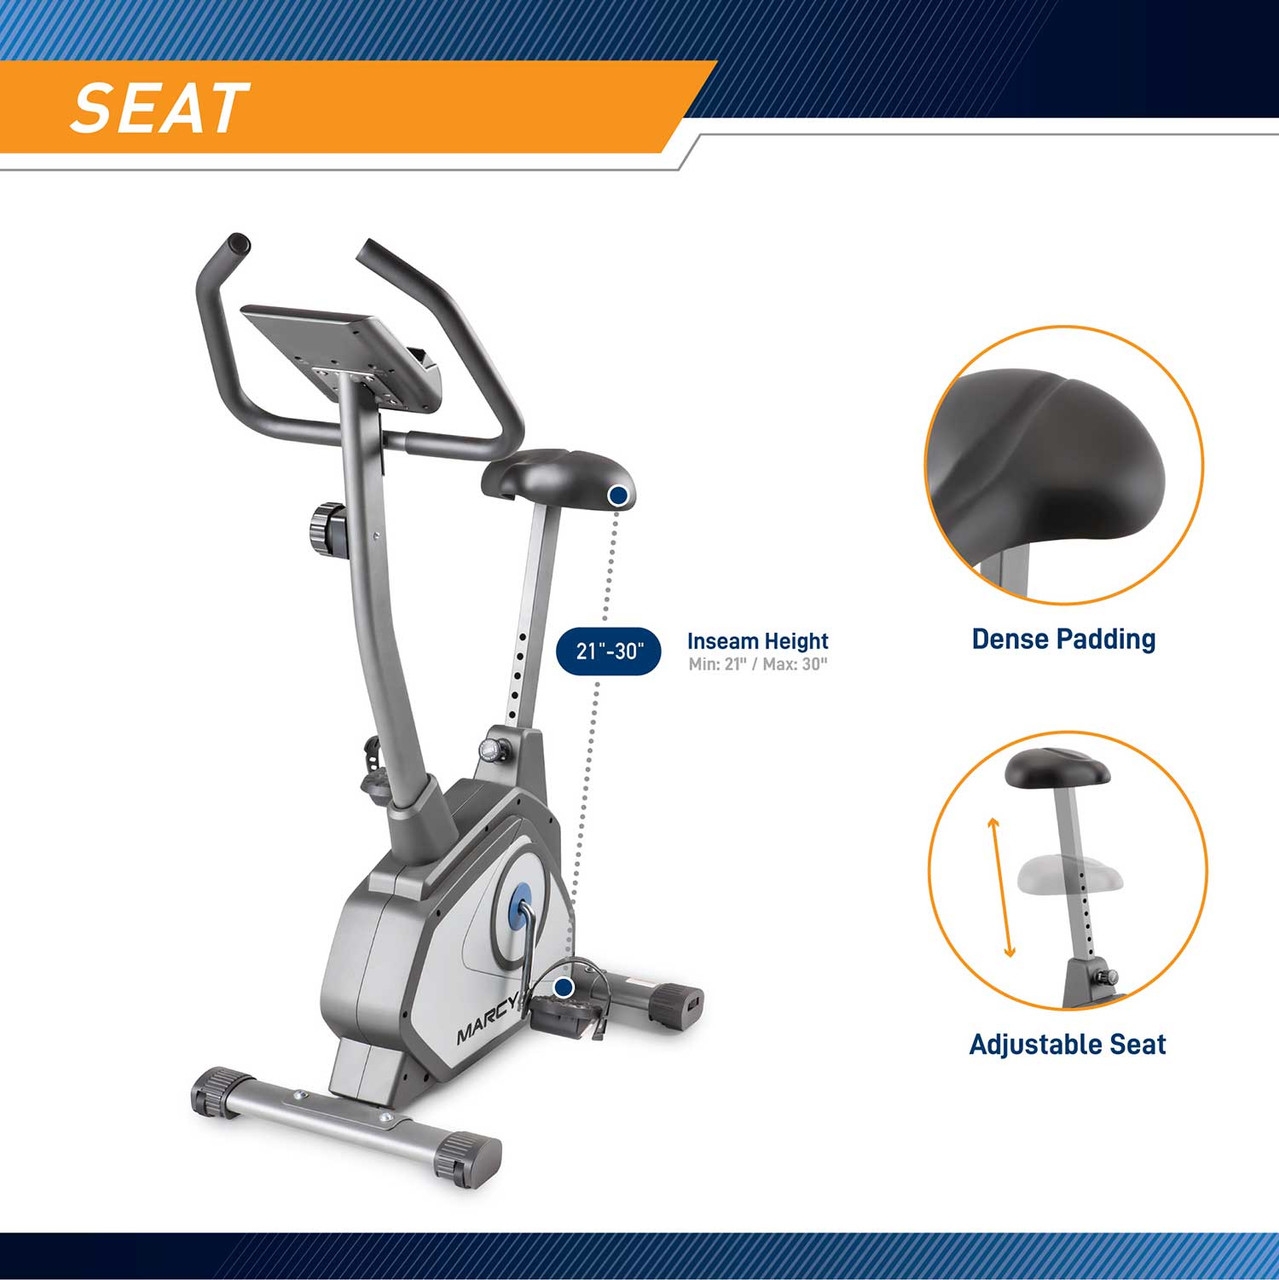 The Magnetic Upright Bike NS-40504U by Marcy has an adjustable seat